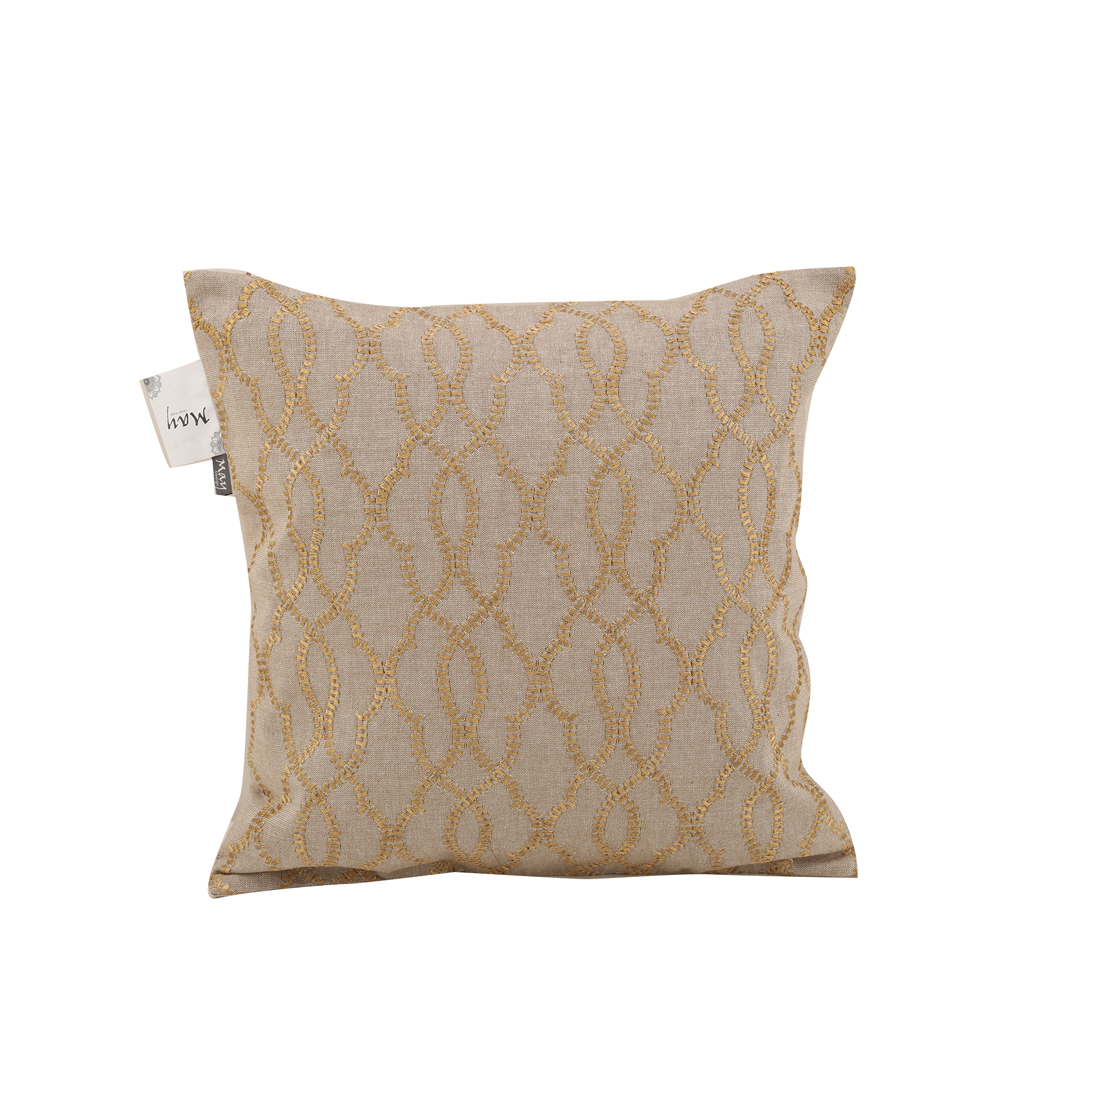 Elan Beige Gold Cotton Cushion Covers in Beige Gold Colour by Living Essence